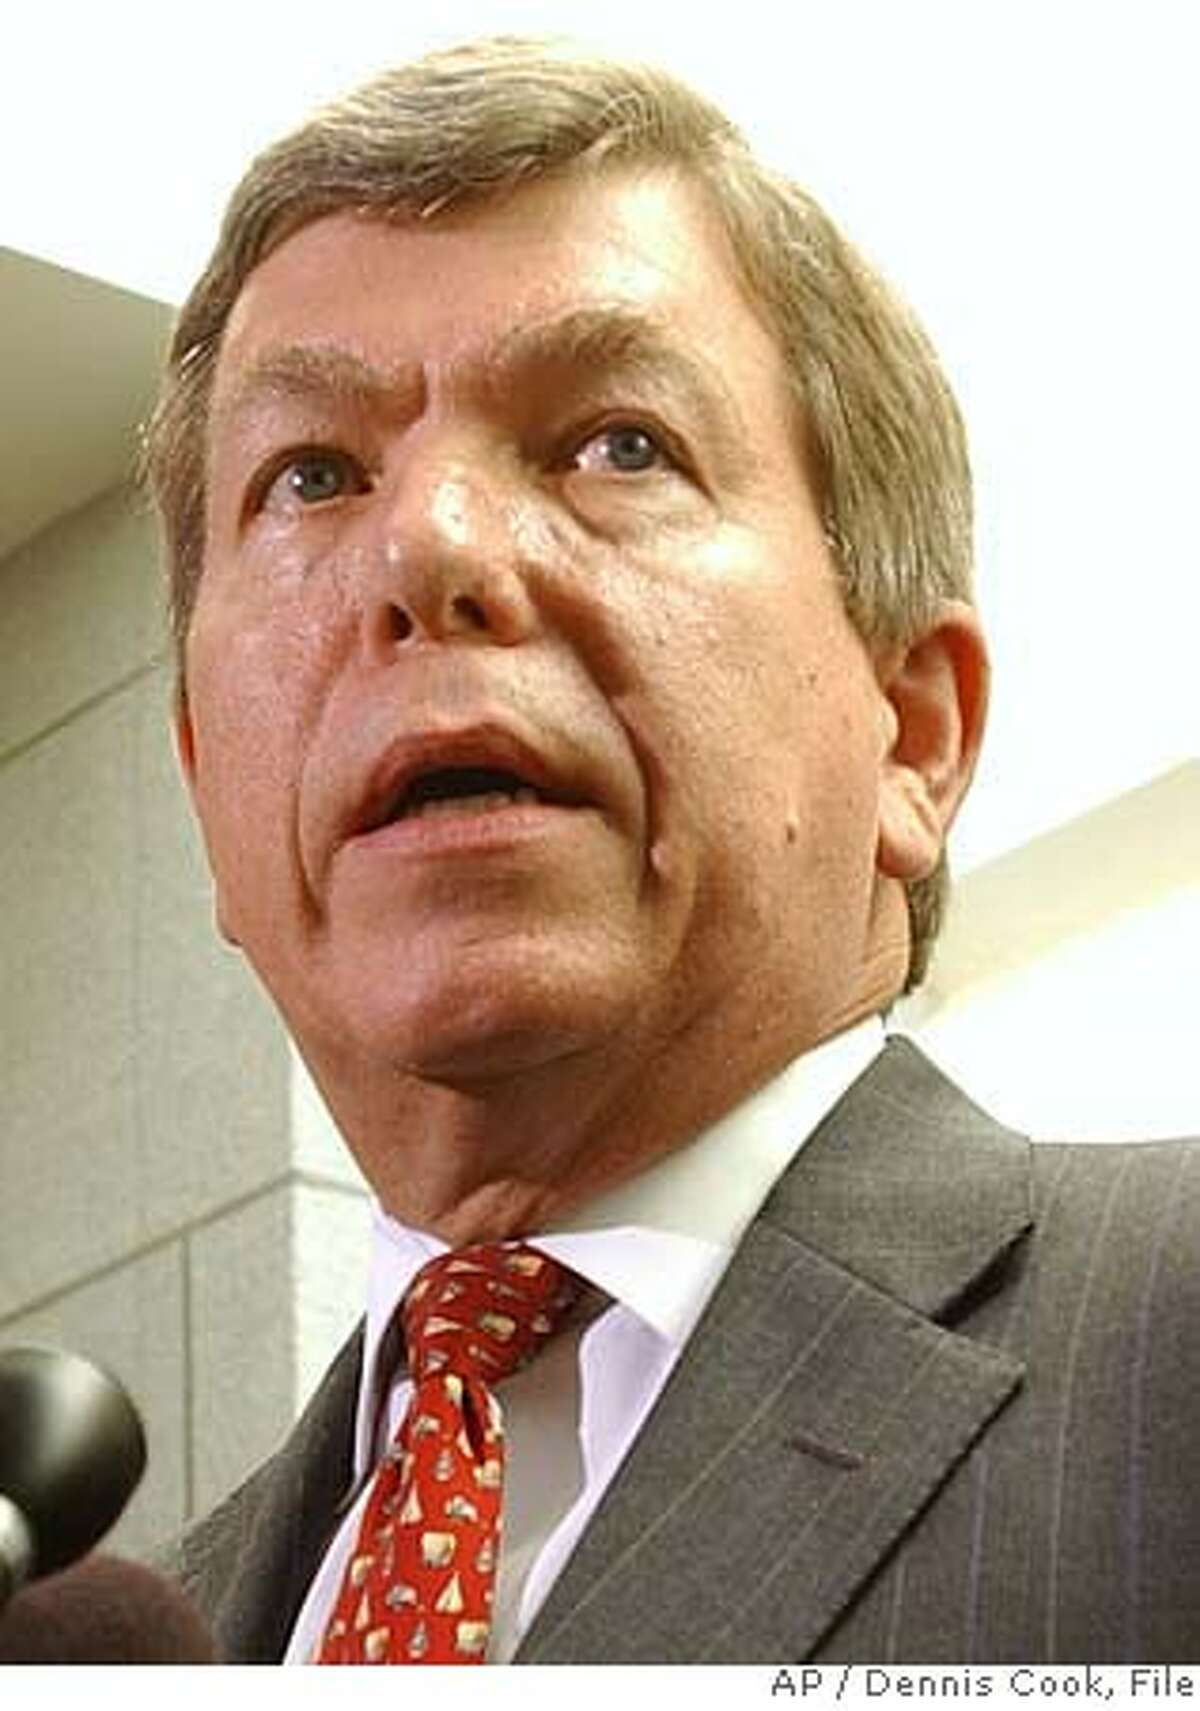 Representative Roy Blunt, R-Mo., left, talks to reporters on Capitol Hill Wednesday, Sept. 28, 2005, after being named to succeed Rep. Tom Delay, R-Tex., as House Majority Leader. DeLay has been indicted by a Texas grand jury on conspiracy charges. (AP Photo/Dennis Cook) Ran on: 09-29-2005 David Dreier, edged out Ran on: 09-29-2005 David Dreier, edged out Ran on: 09-29-2005 David Dreier, edged out Ran on: 10-06-2005 Tom DeLay Ran on: 11-11-2005 House Majority Leader Roy Blunt pledged to bring the bill before the House next week.